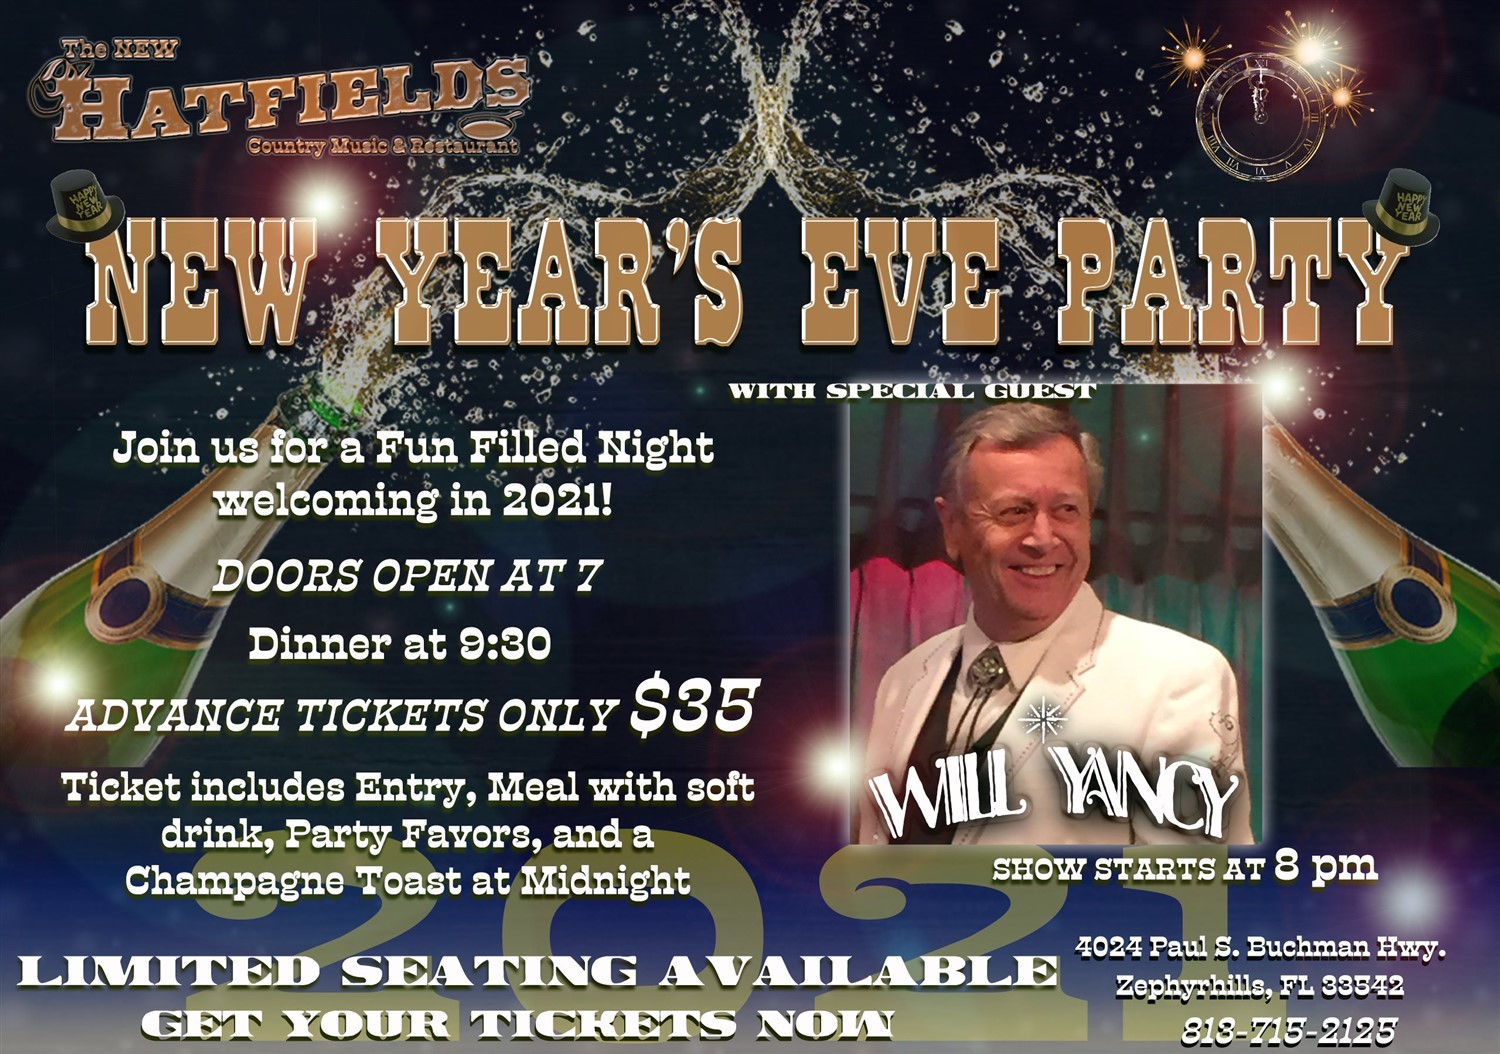 NYE with Will Yancy Admission includes meal, soft drink, party favors and champagne toast at midnight on Dec 31, 20:00@Hatfields - Buy tickets and Get information on Hatfields